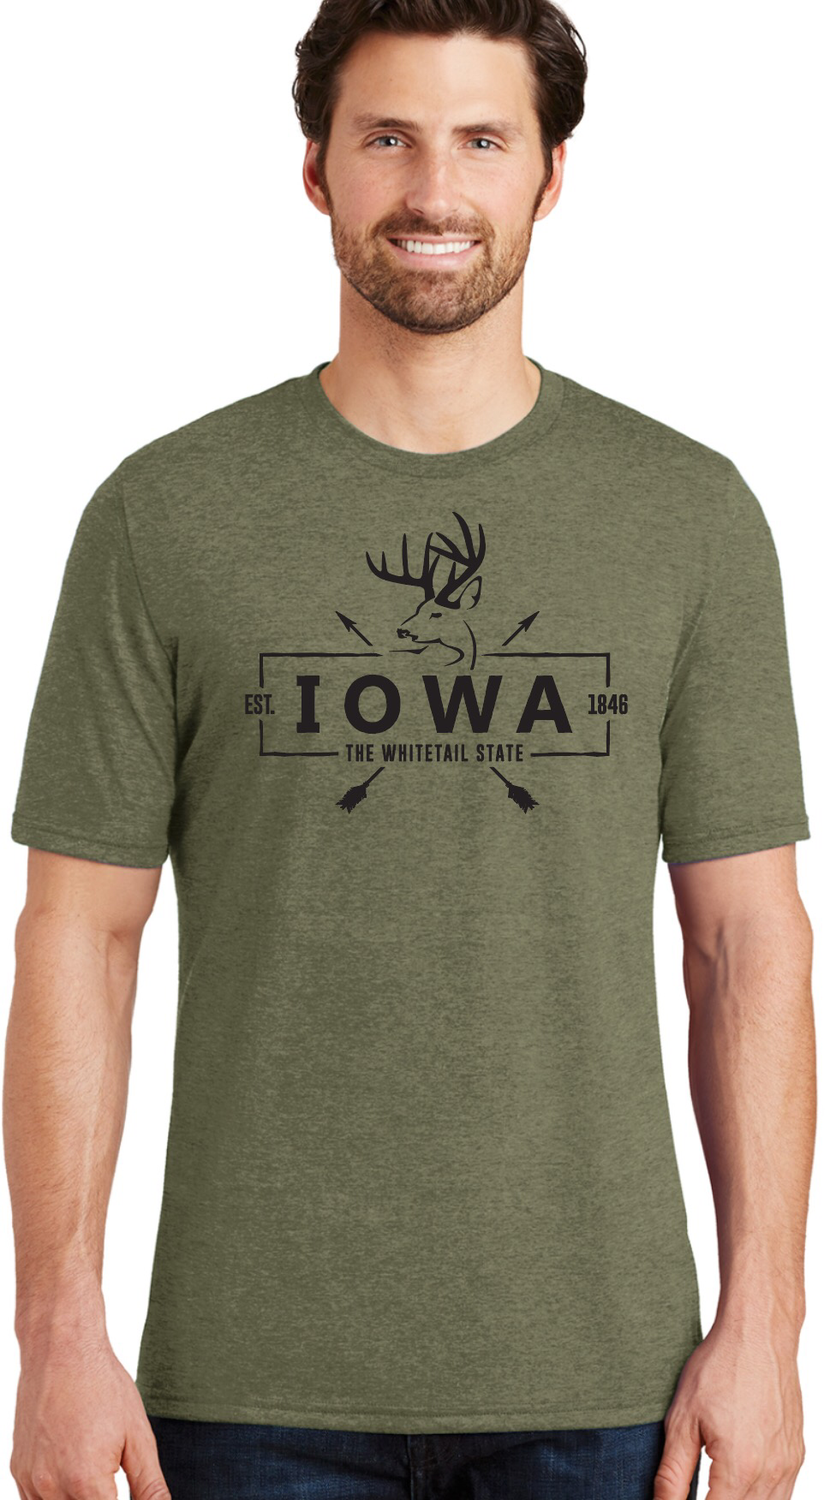 Whitetail State Green